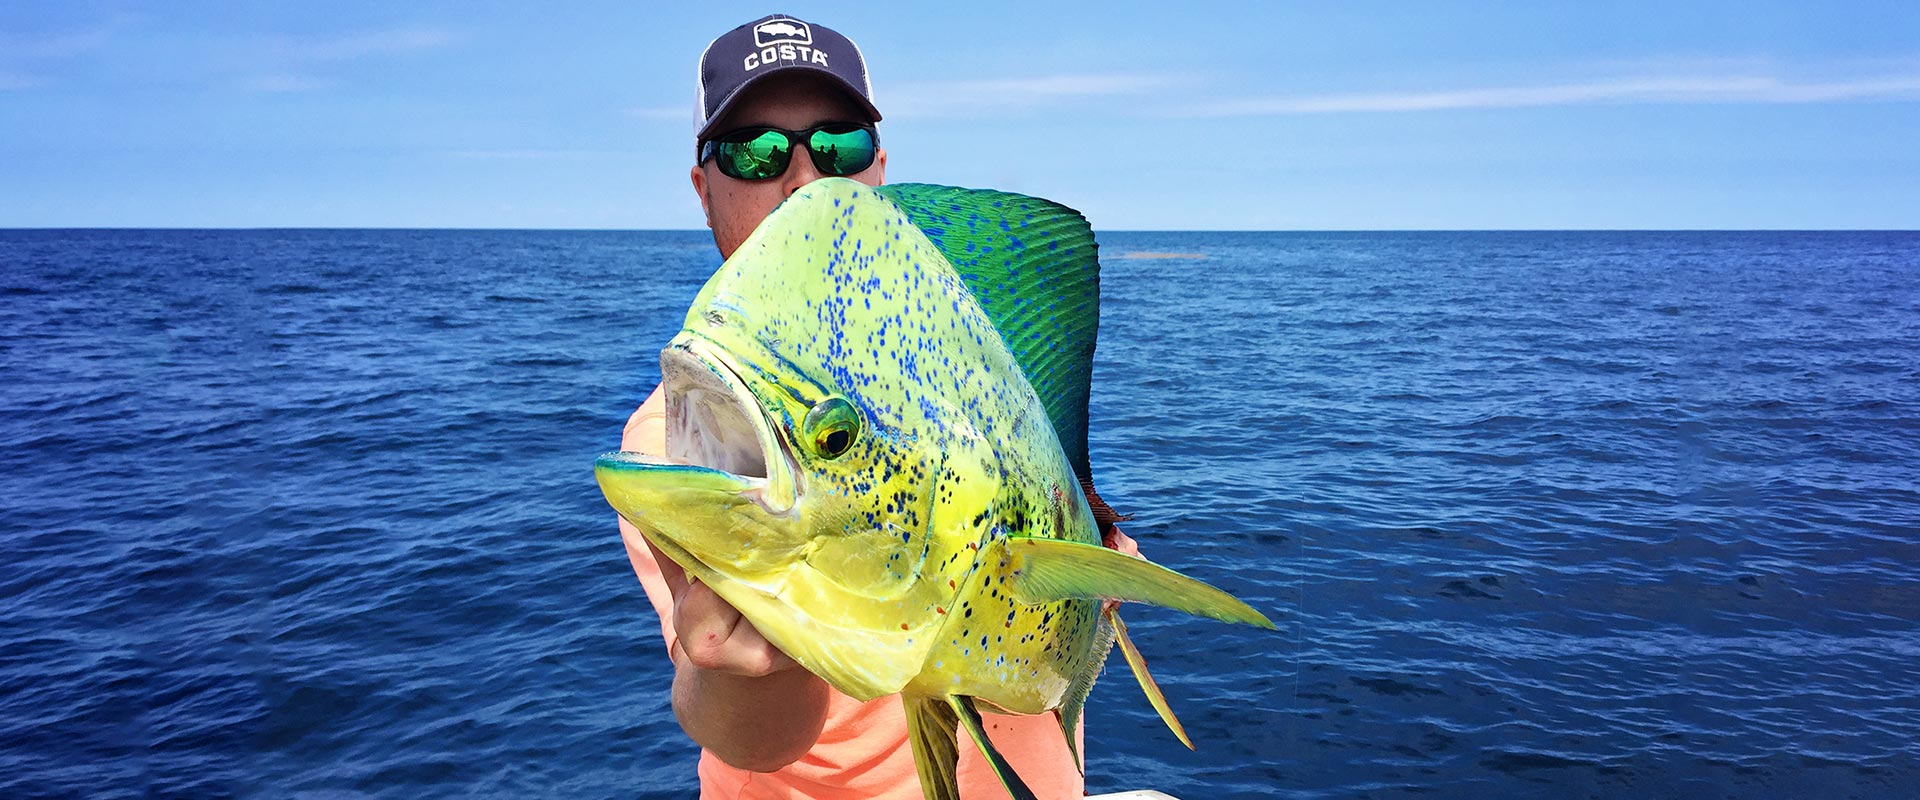 Deep sea fishing charters cape canaveral cocoa beach for Deep sea fishing trips